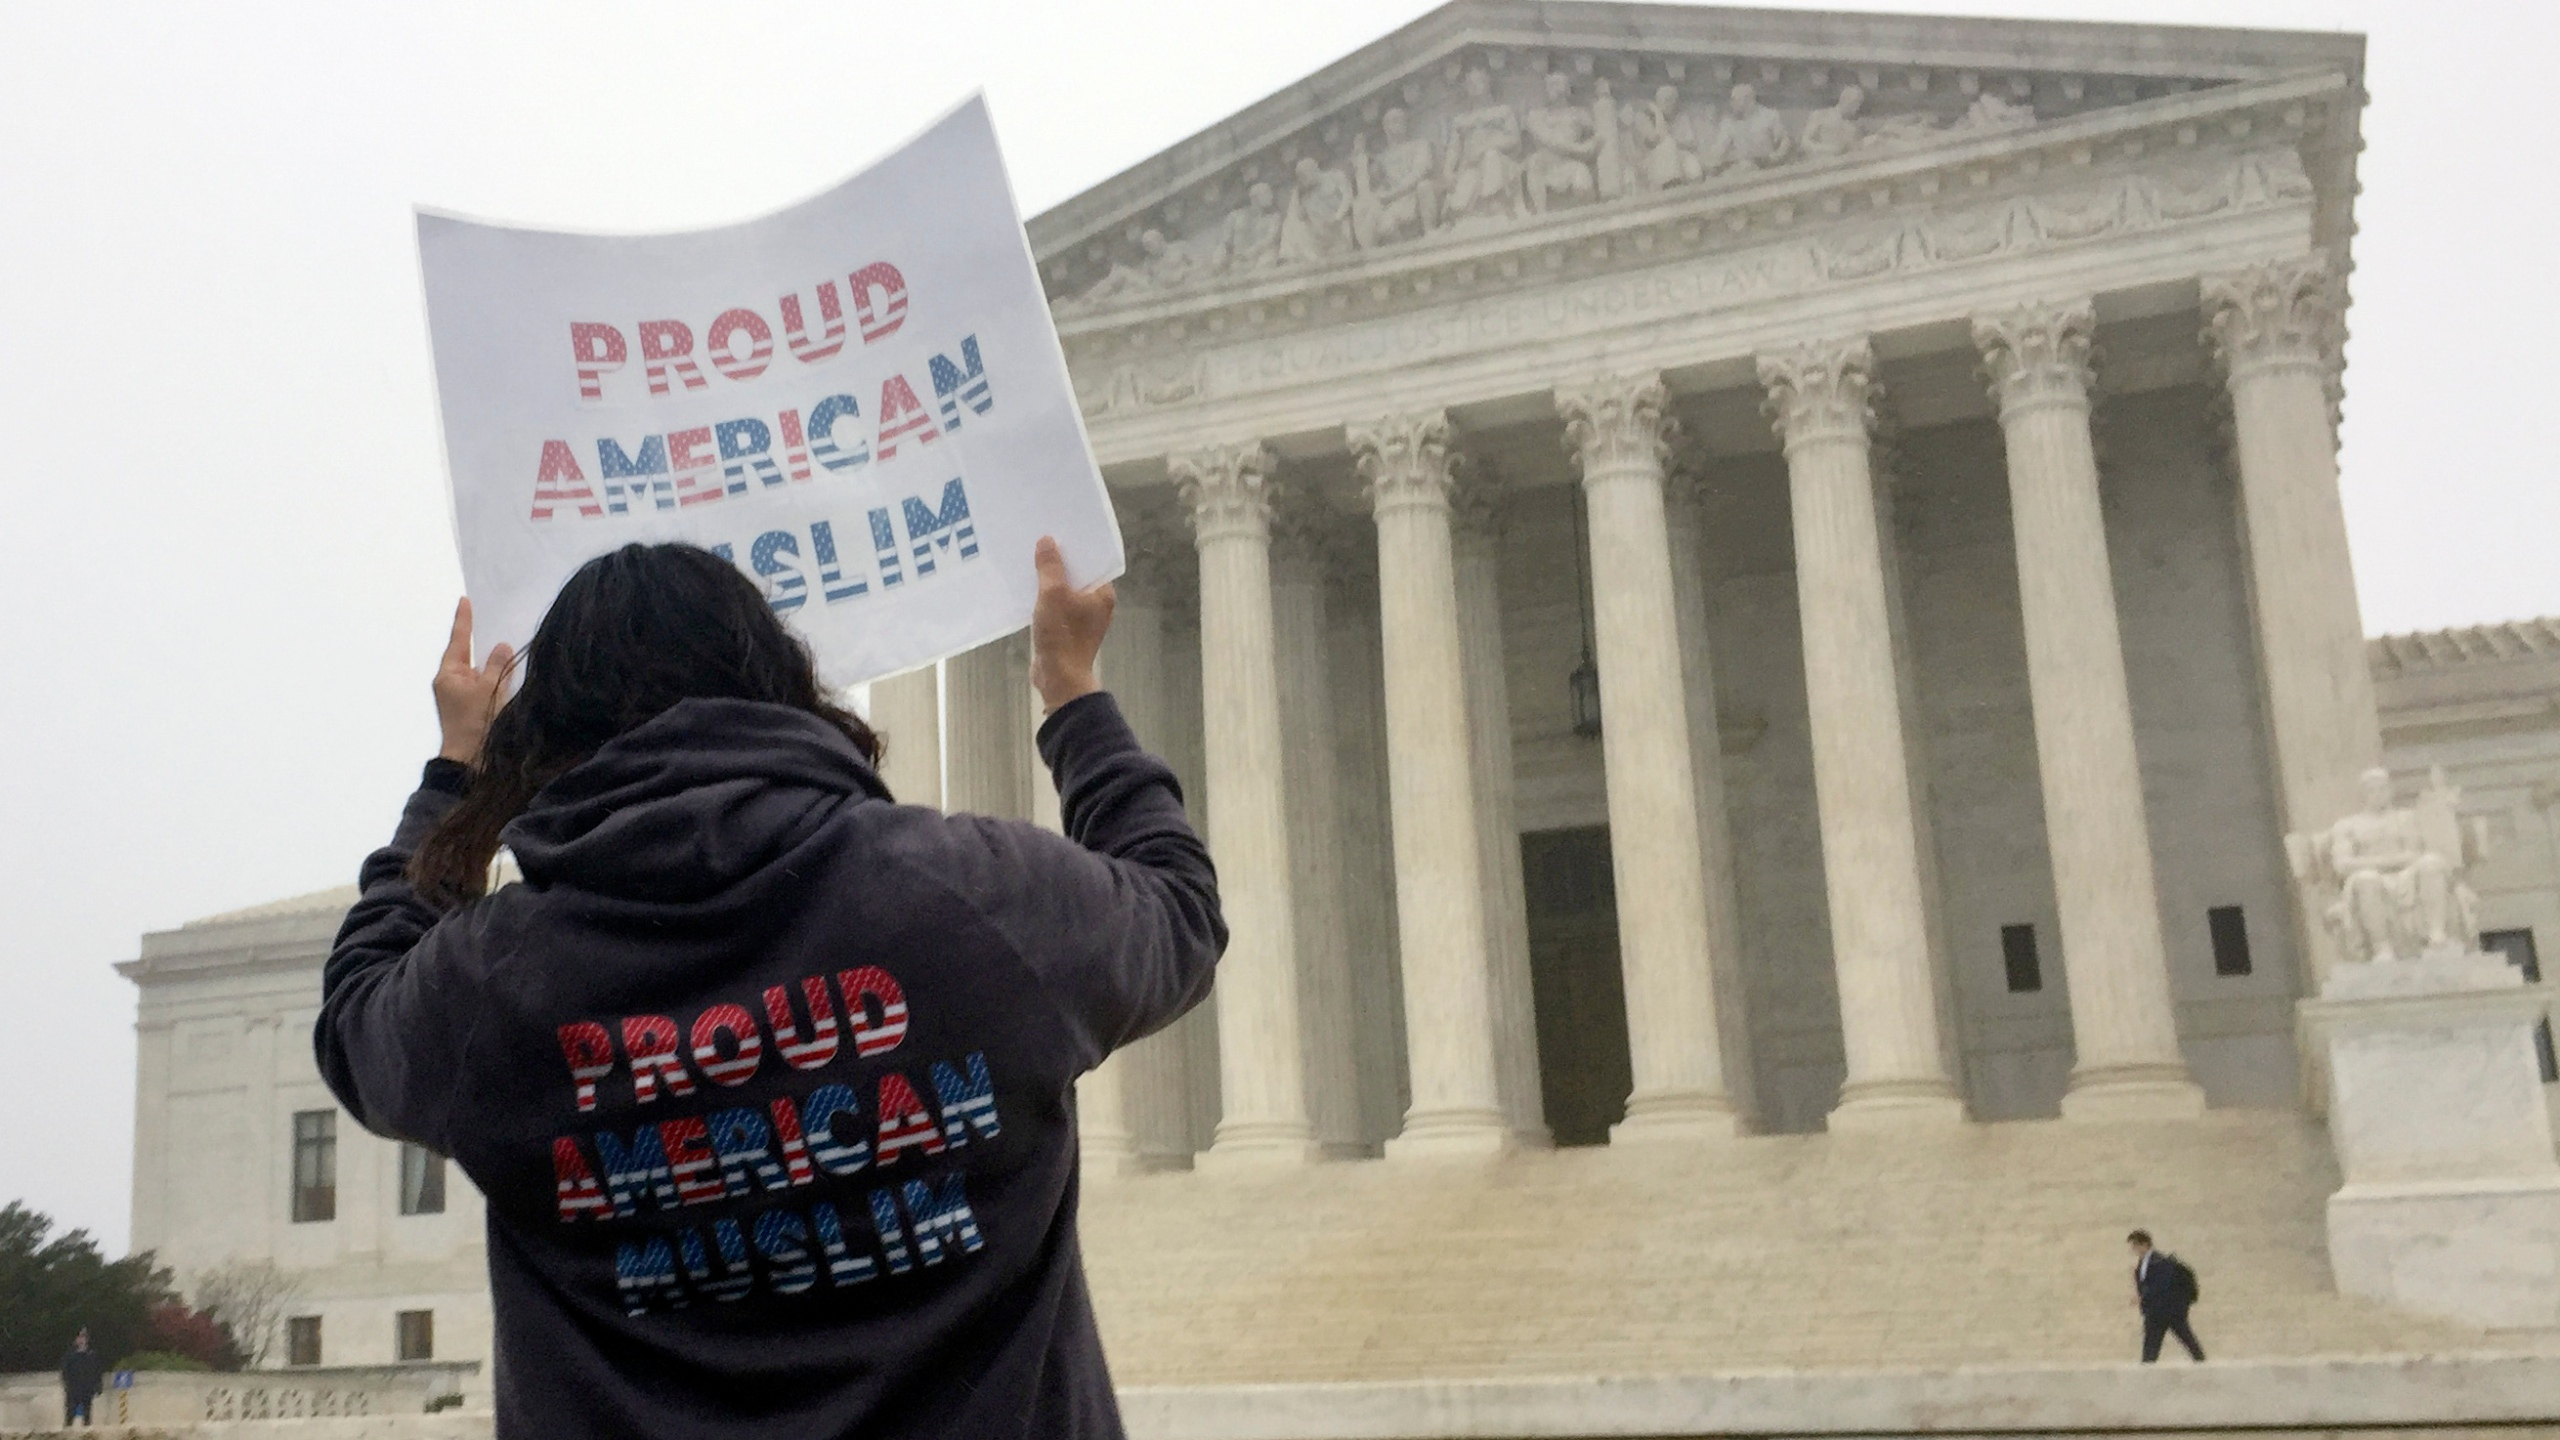 Supreme_Court_Travel_Ban_36669-159532.jpg68518703